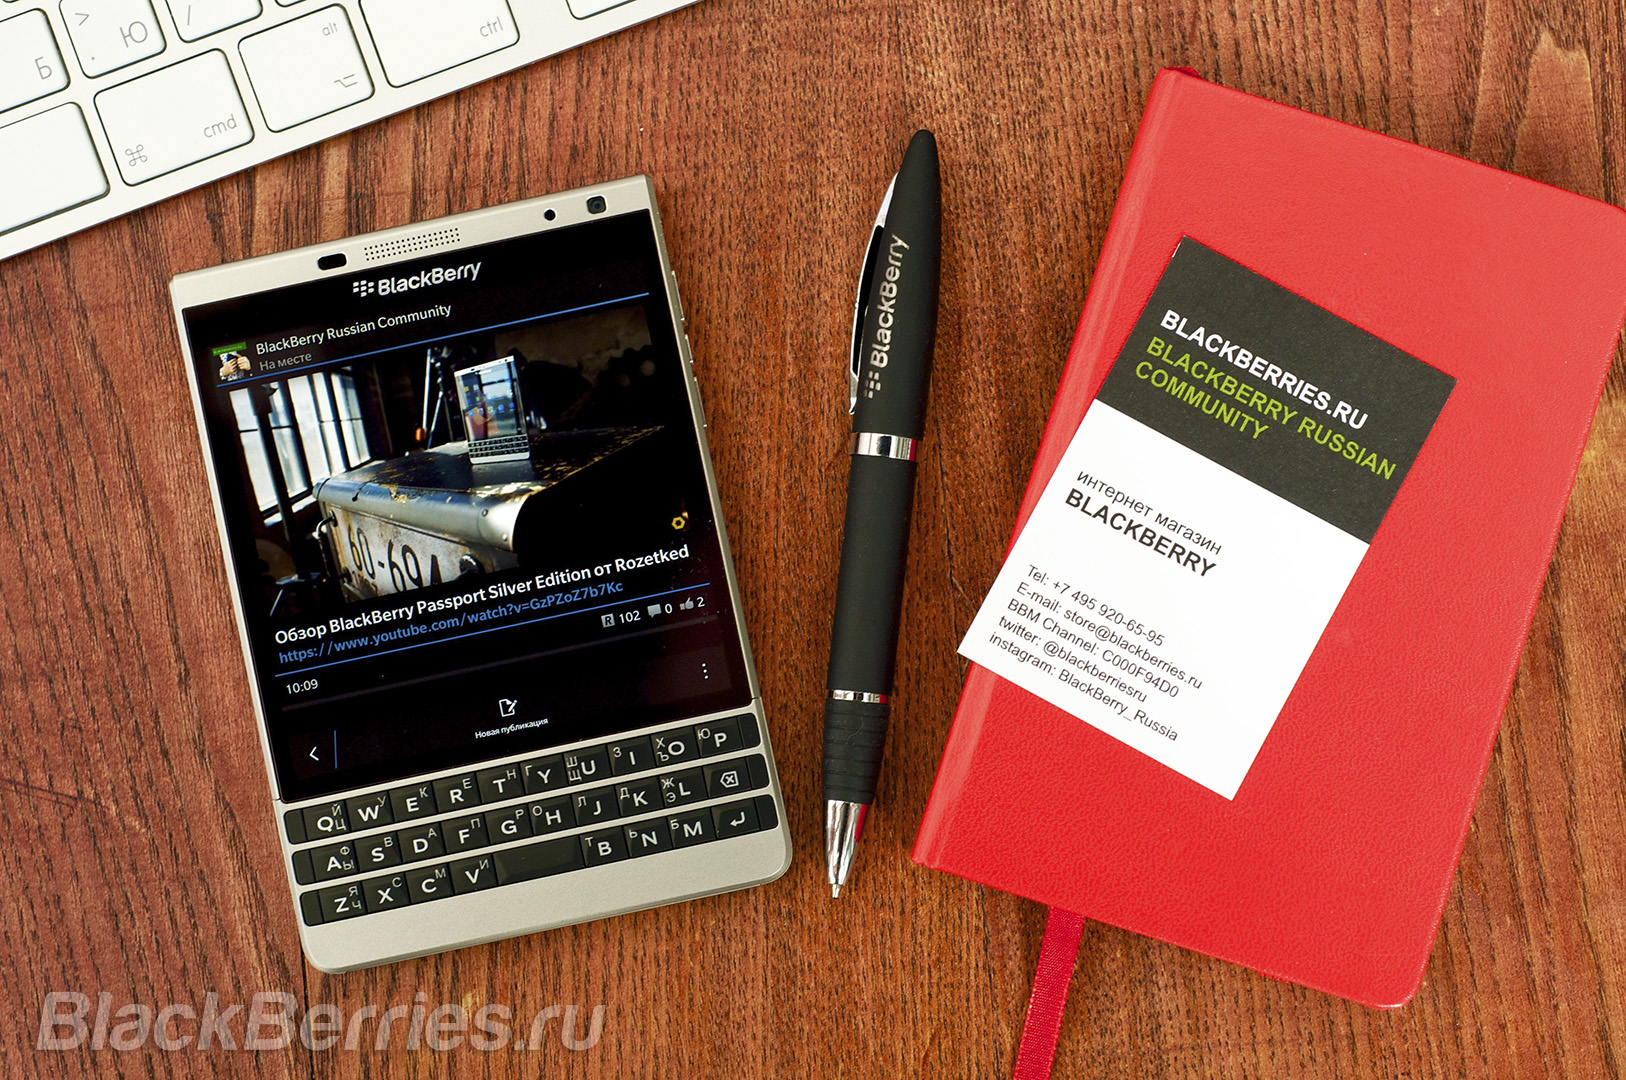 BlackBerry-Passport-Silver-Apps-15-4